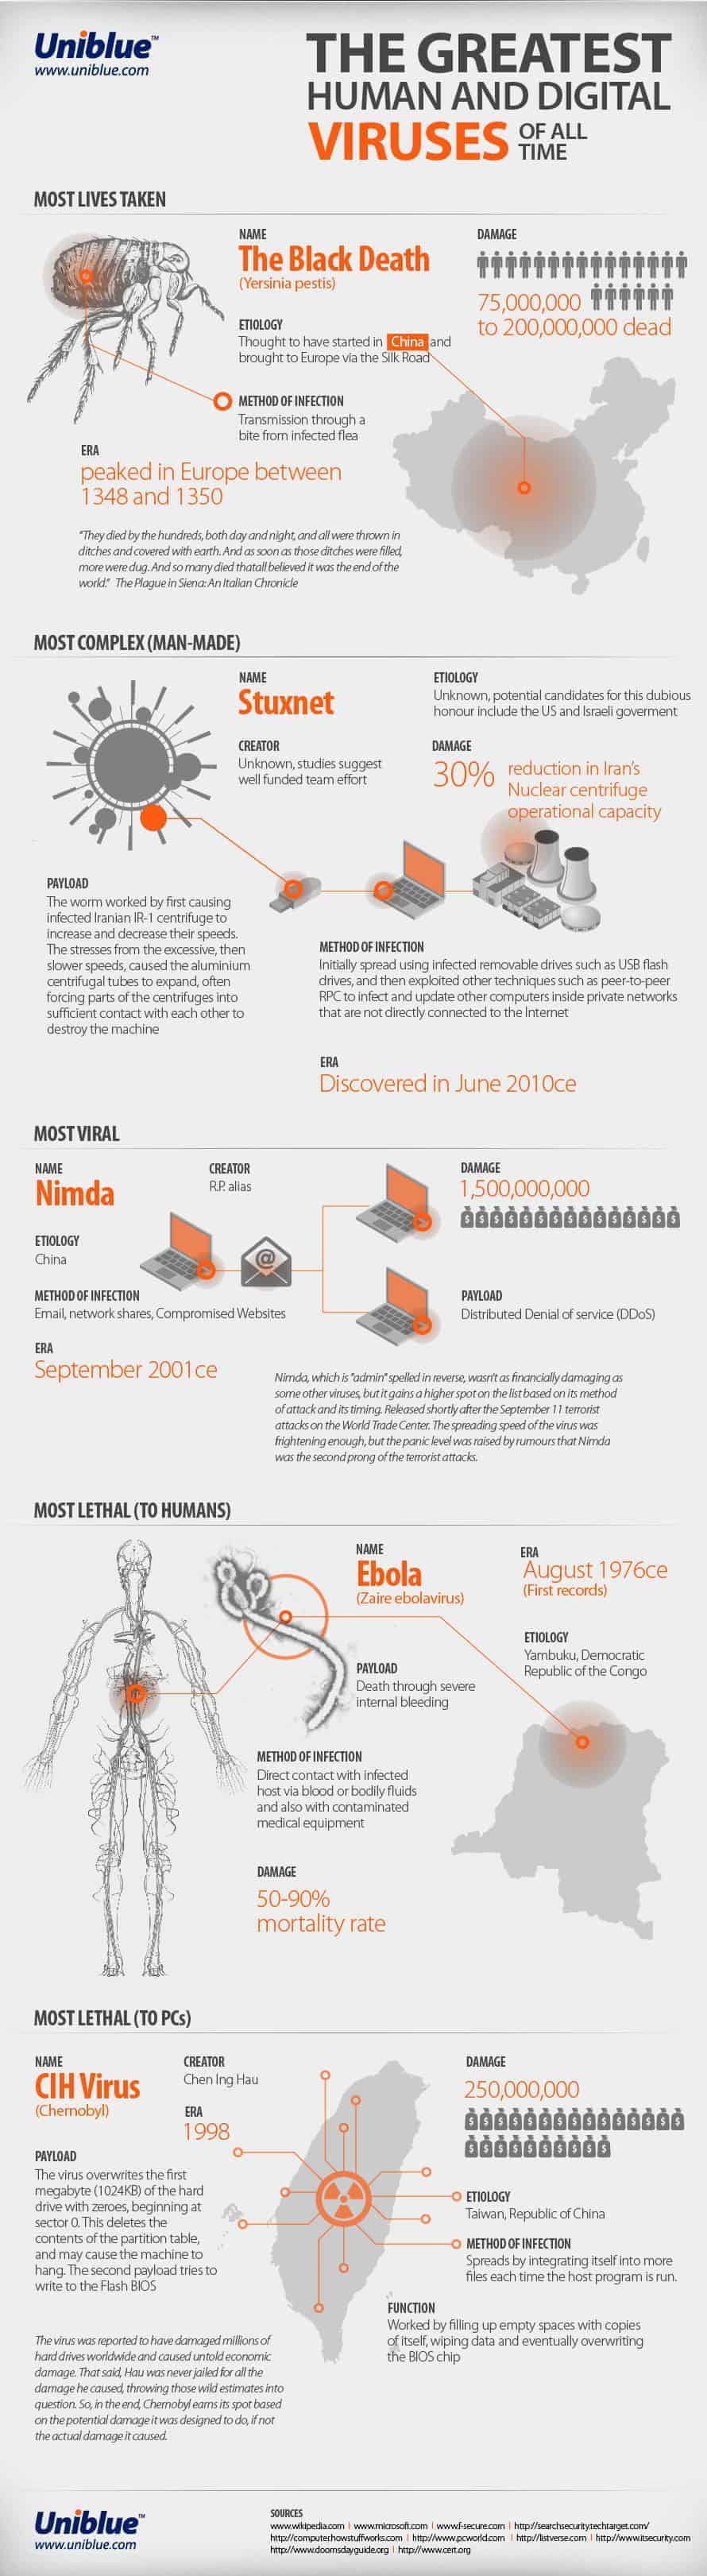 The Greatest Human and Digital Viruses of All Time [infographic]